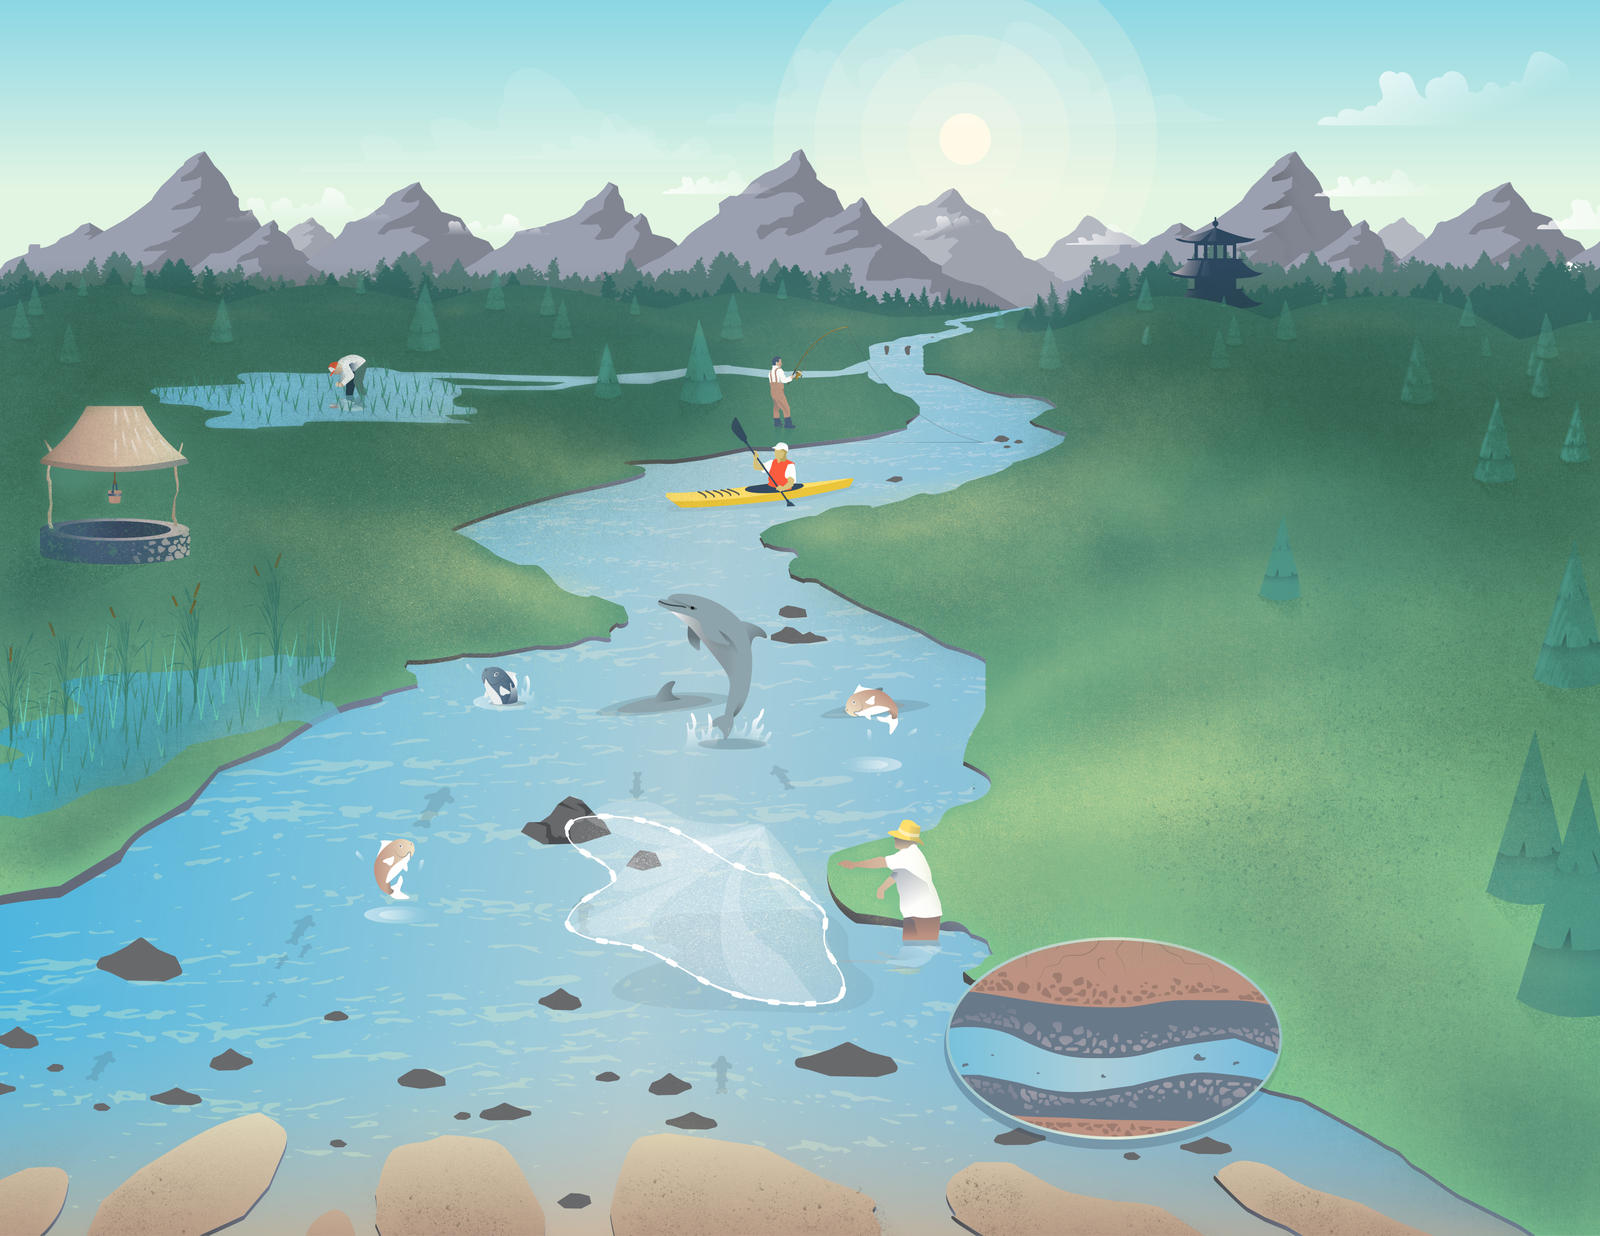 Illustration of a healthy, free-flowing river